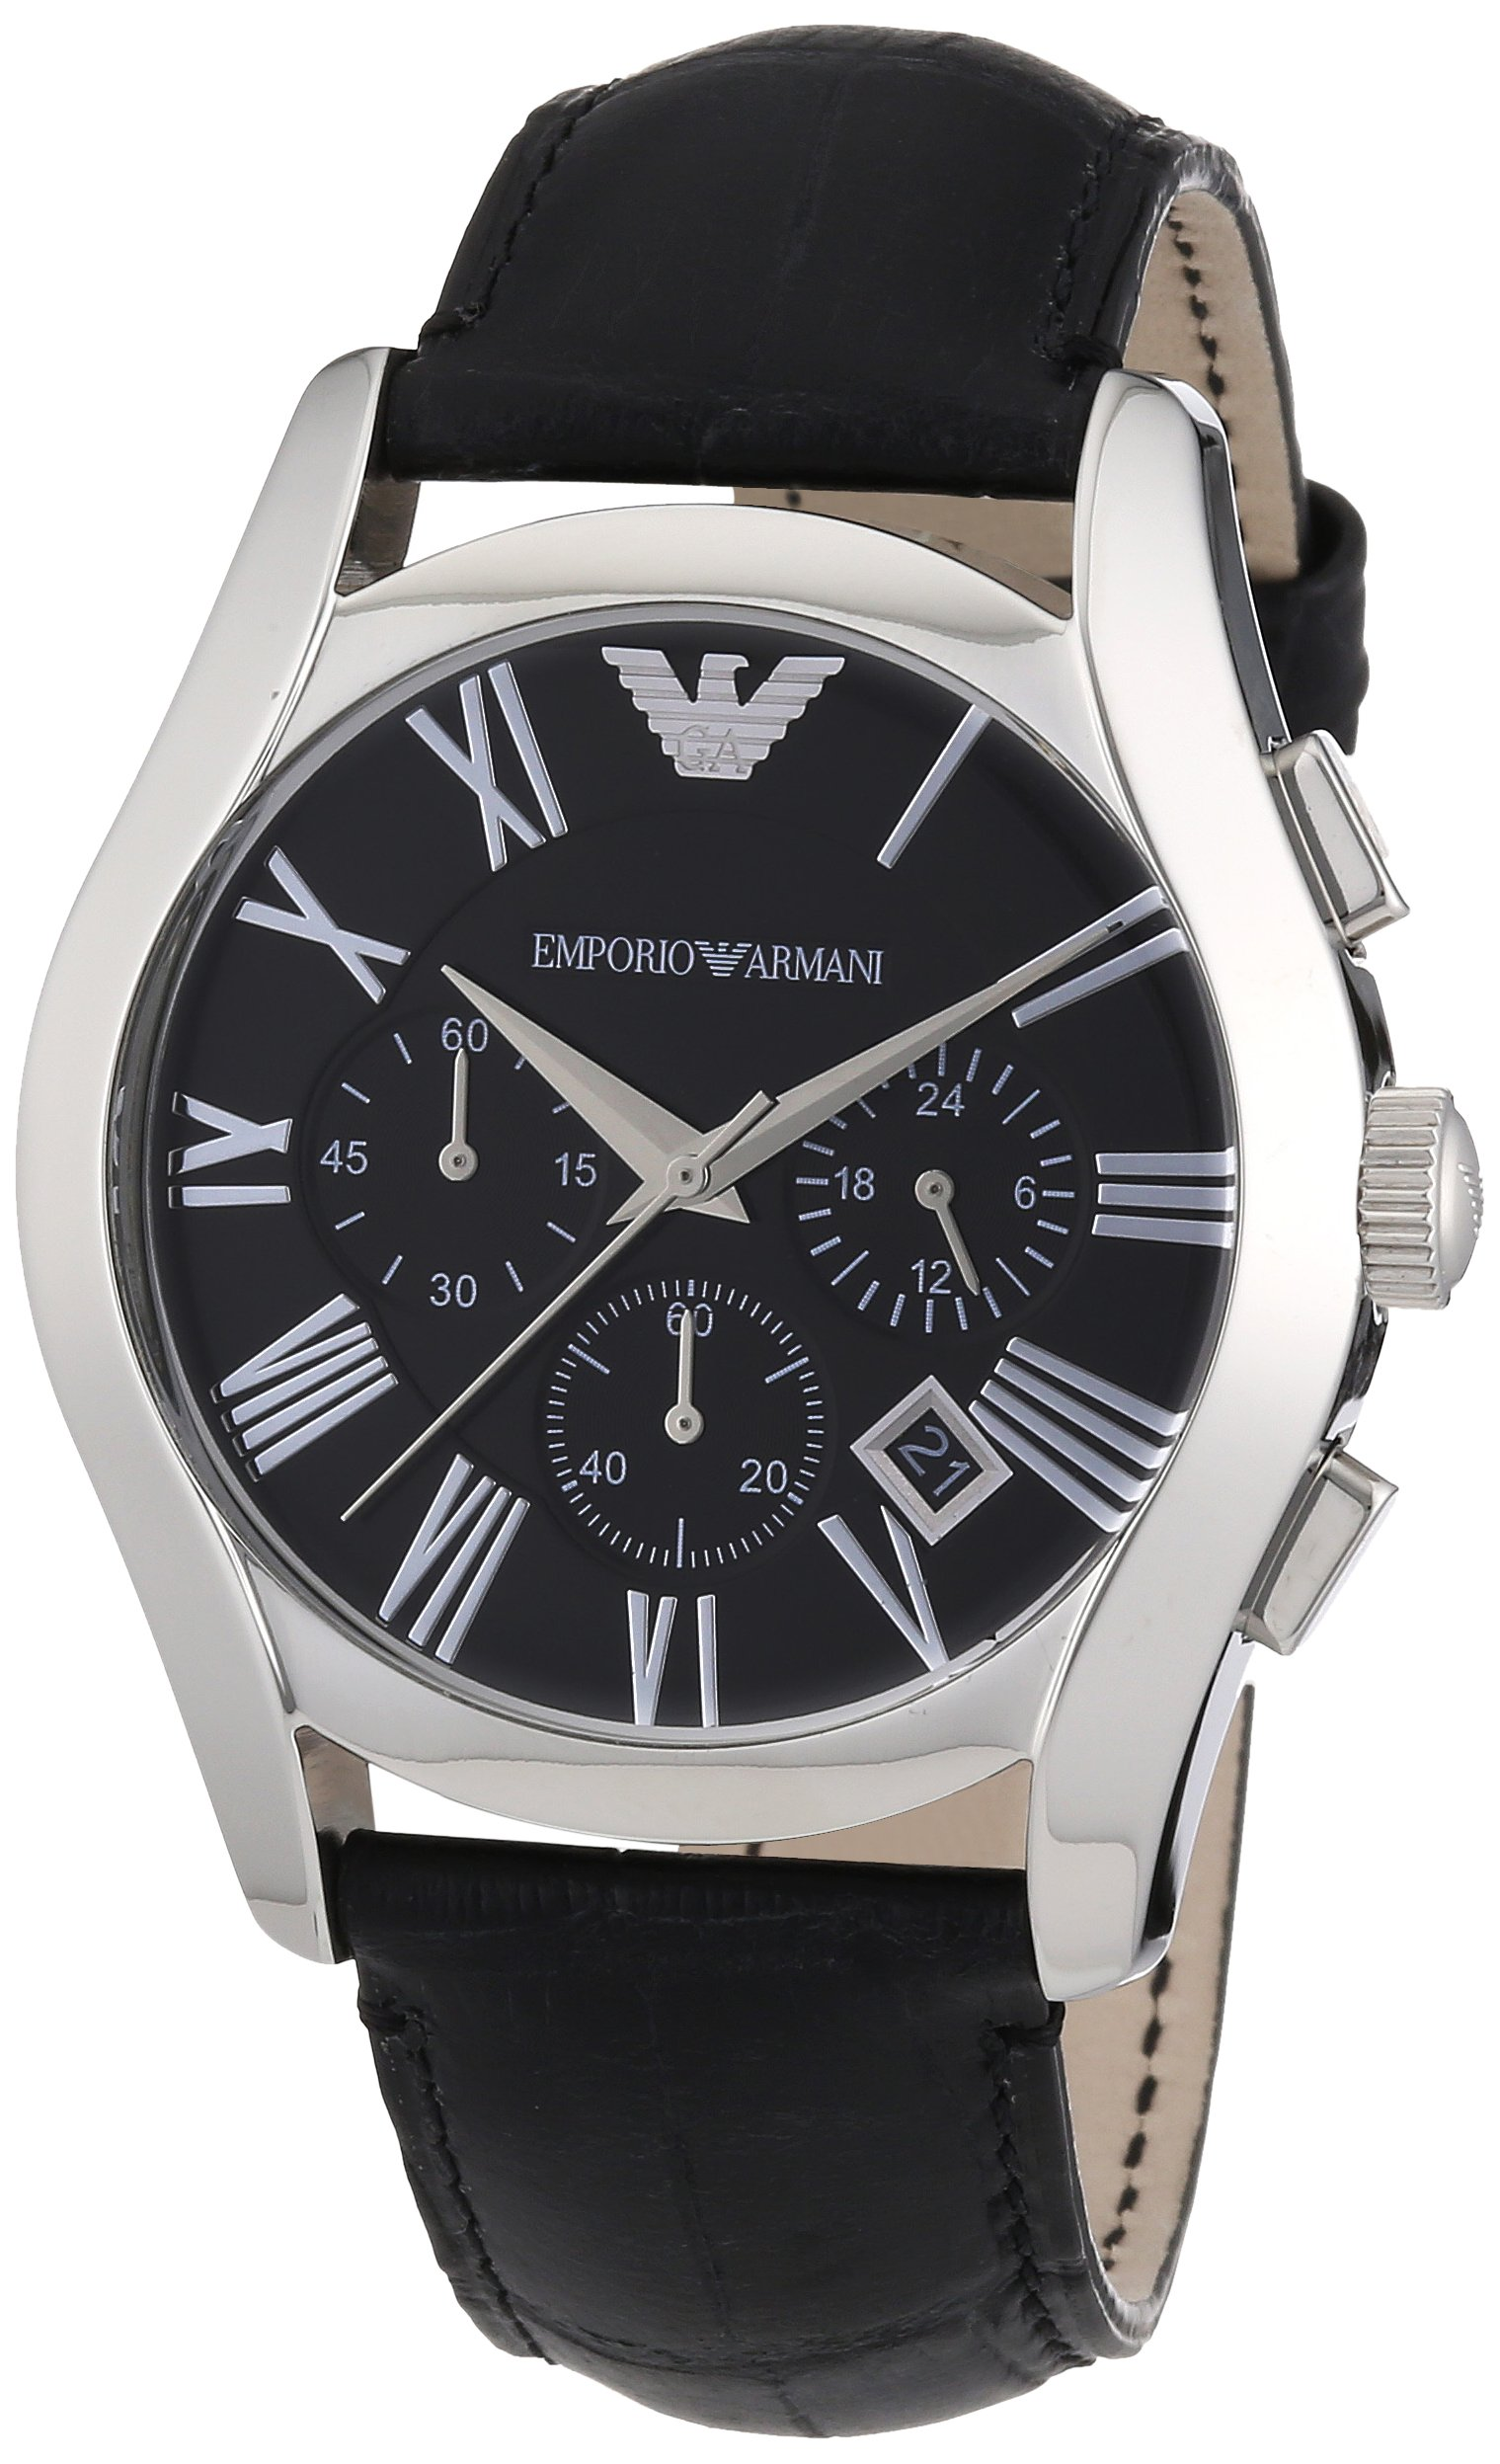 Emporio Armani Men's Watch – AR1633